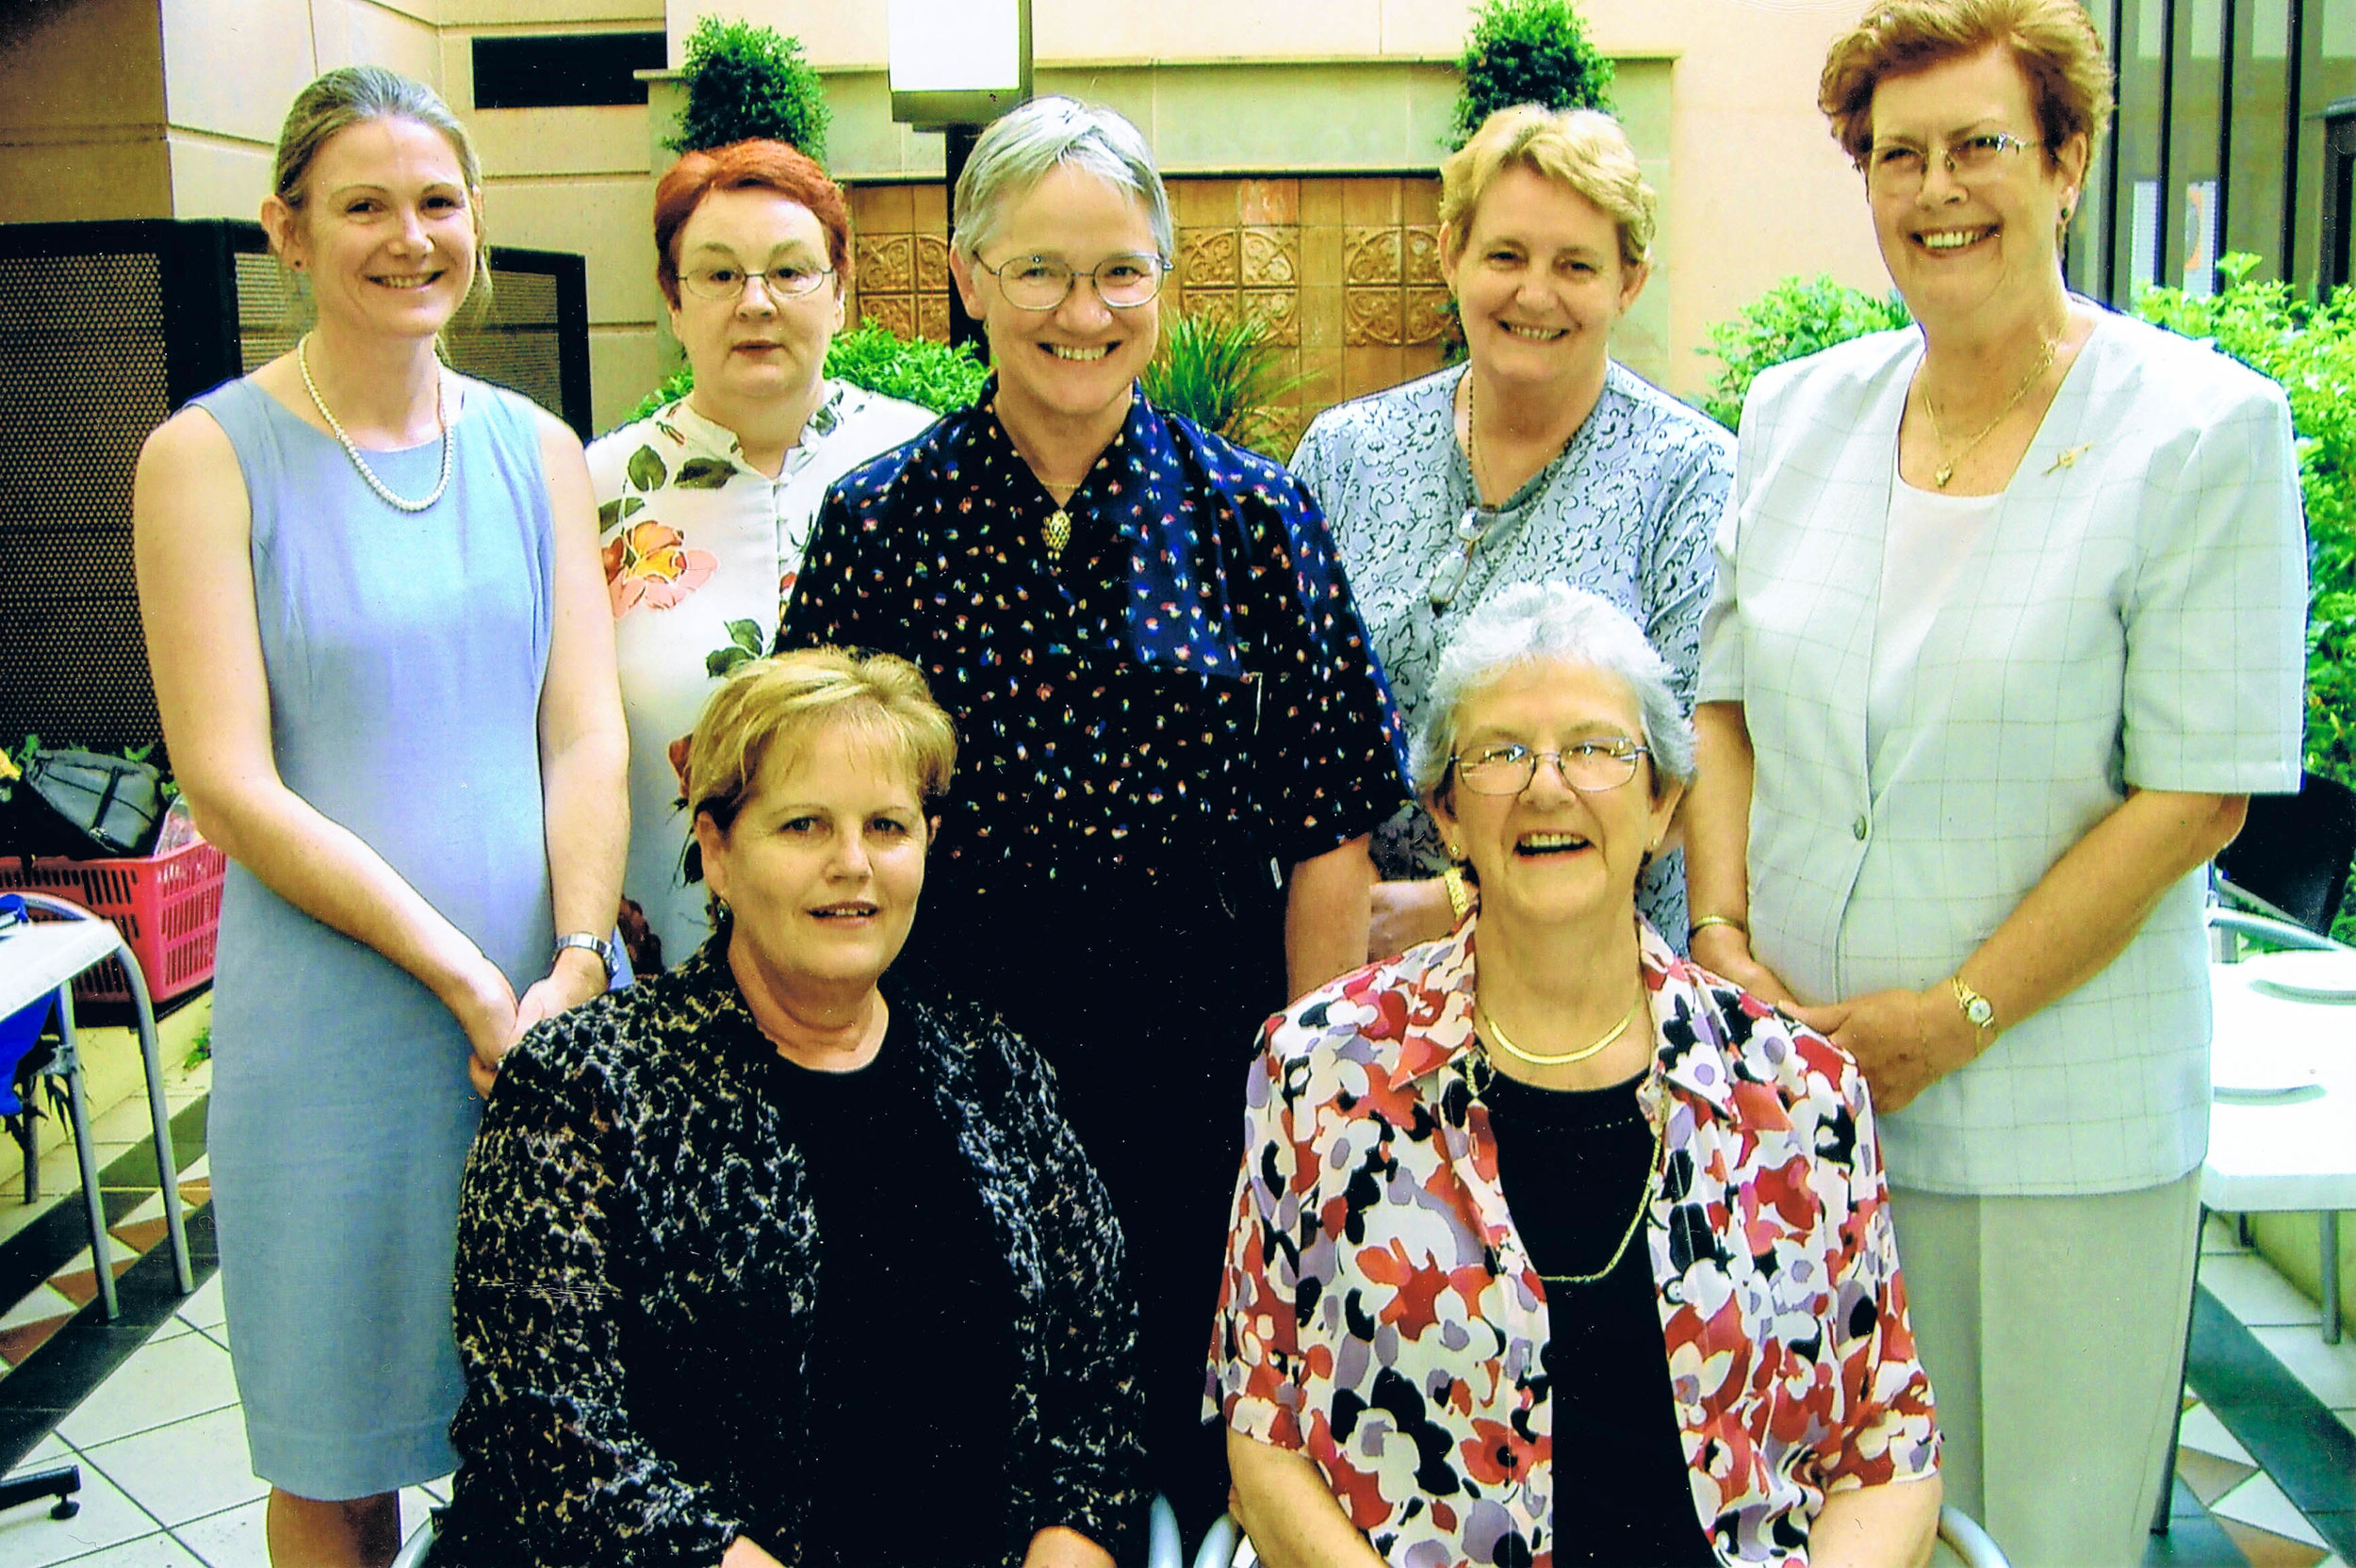 Our trustees on 1st March 2006  L-R: Anne Williams, Patsy Turner, Jeanette Robertson, Ann Callaghan, Caralyne Wilson, Gail Milner (seated L), Wilma Gardiner (seated R)